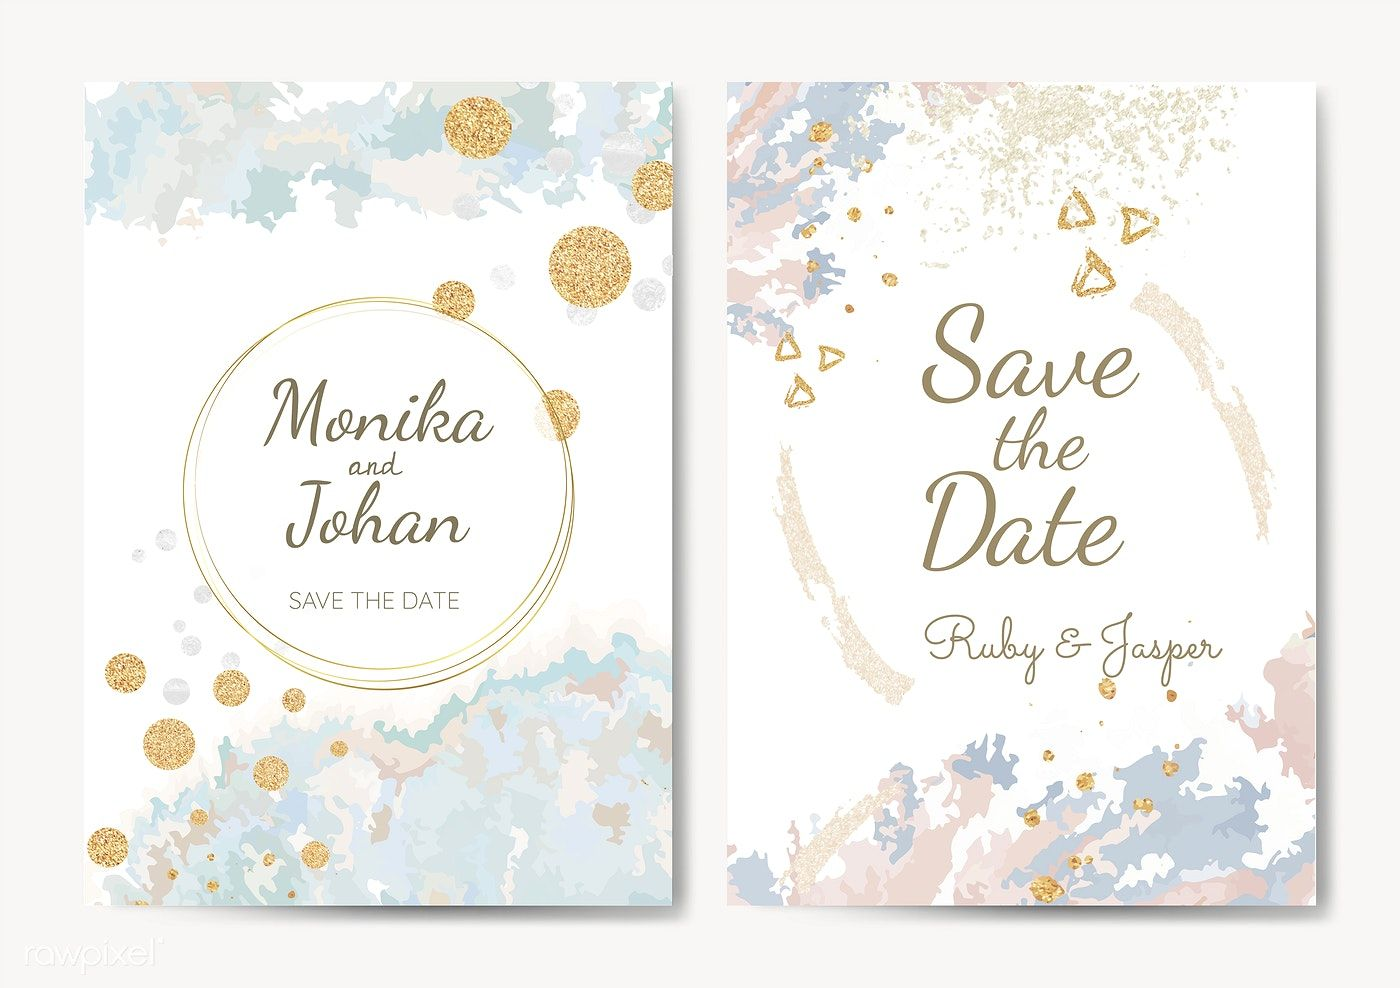 Download Premium Vector Of Save The Date Wedding Invitation Vector 533327 Wedding Invitation Vector Modern Wedding Invitation Wording Wedding Invitations